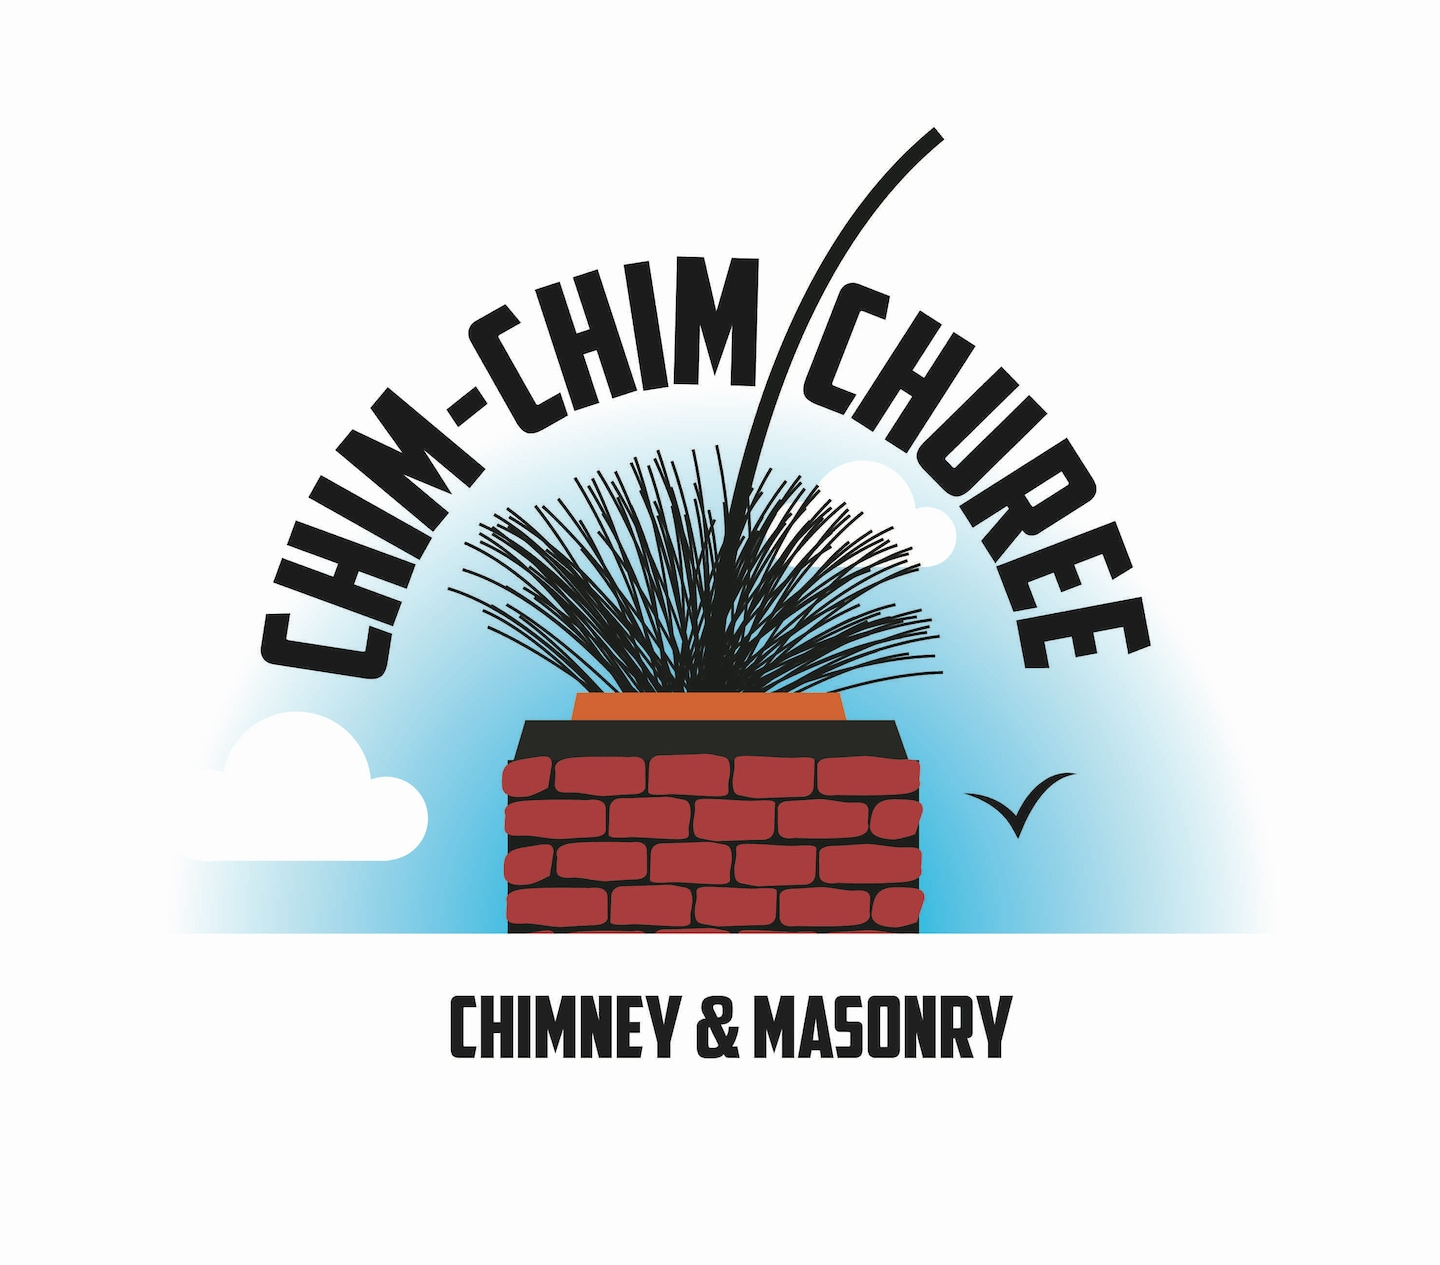 Chim-Chim Churee Chimney & Masonry